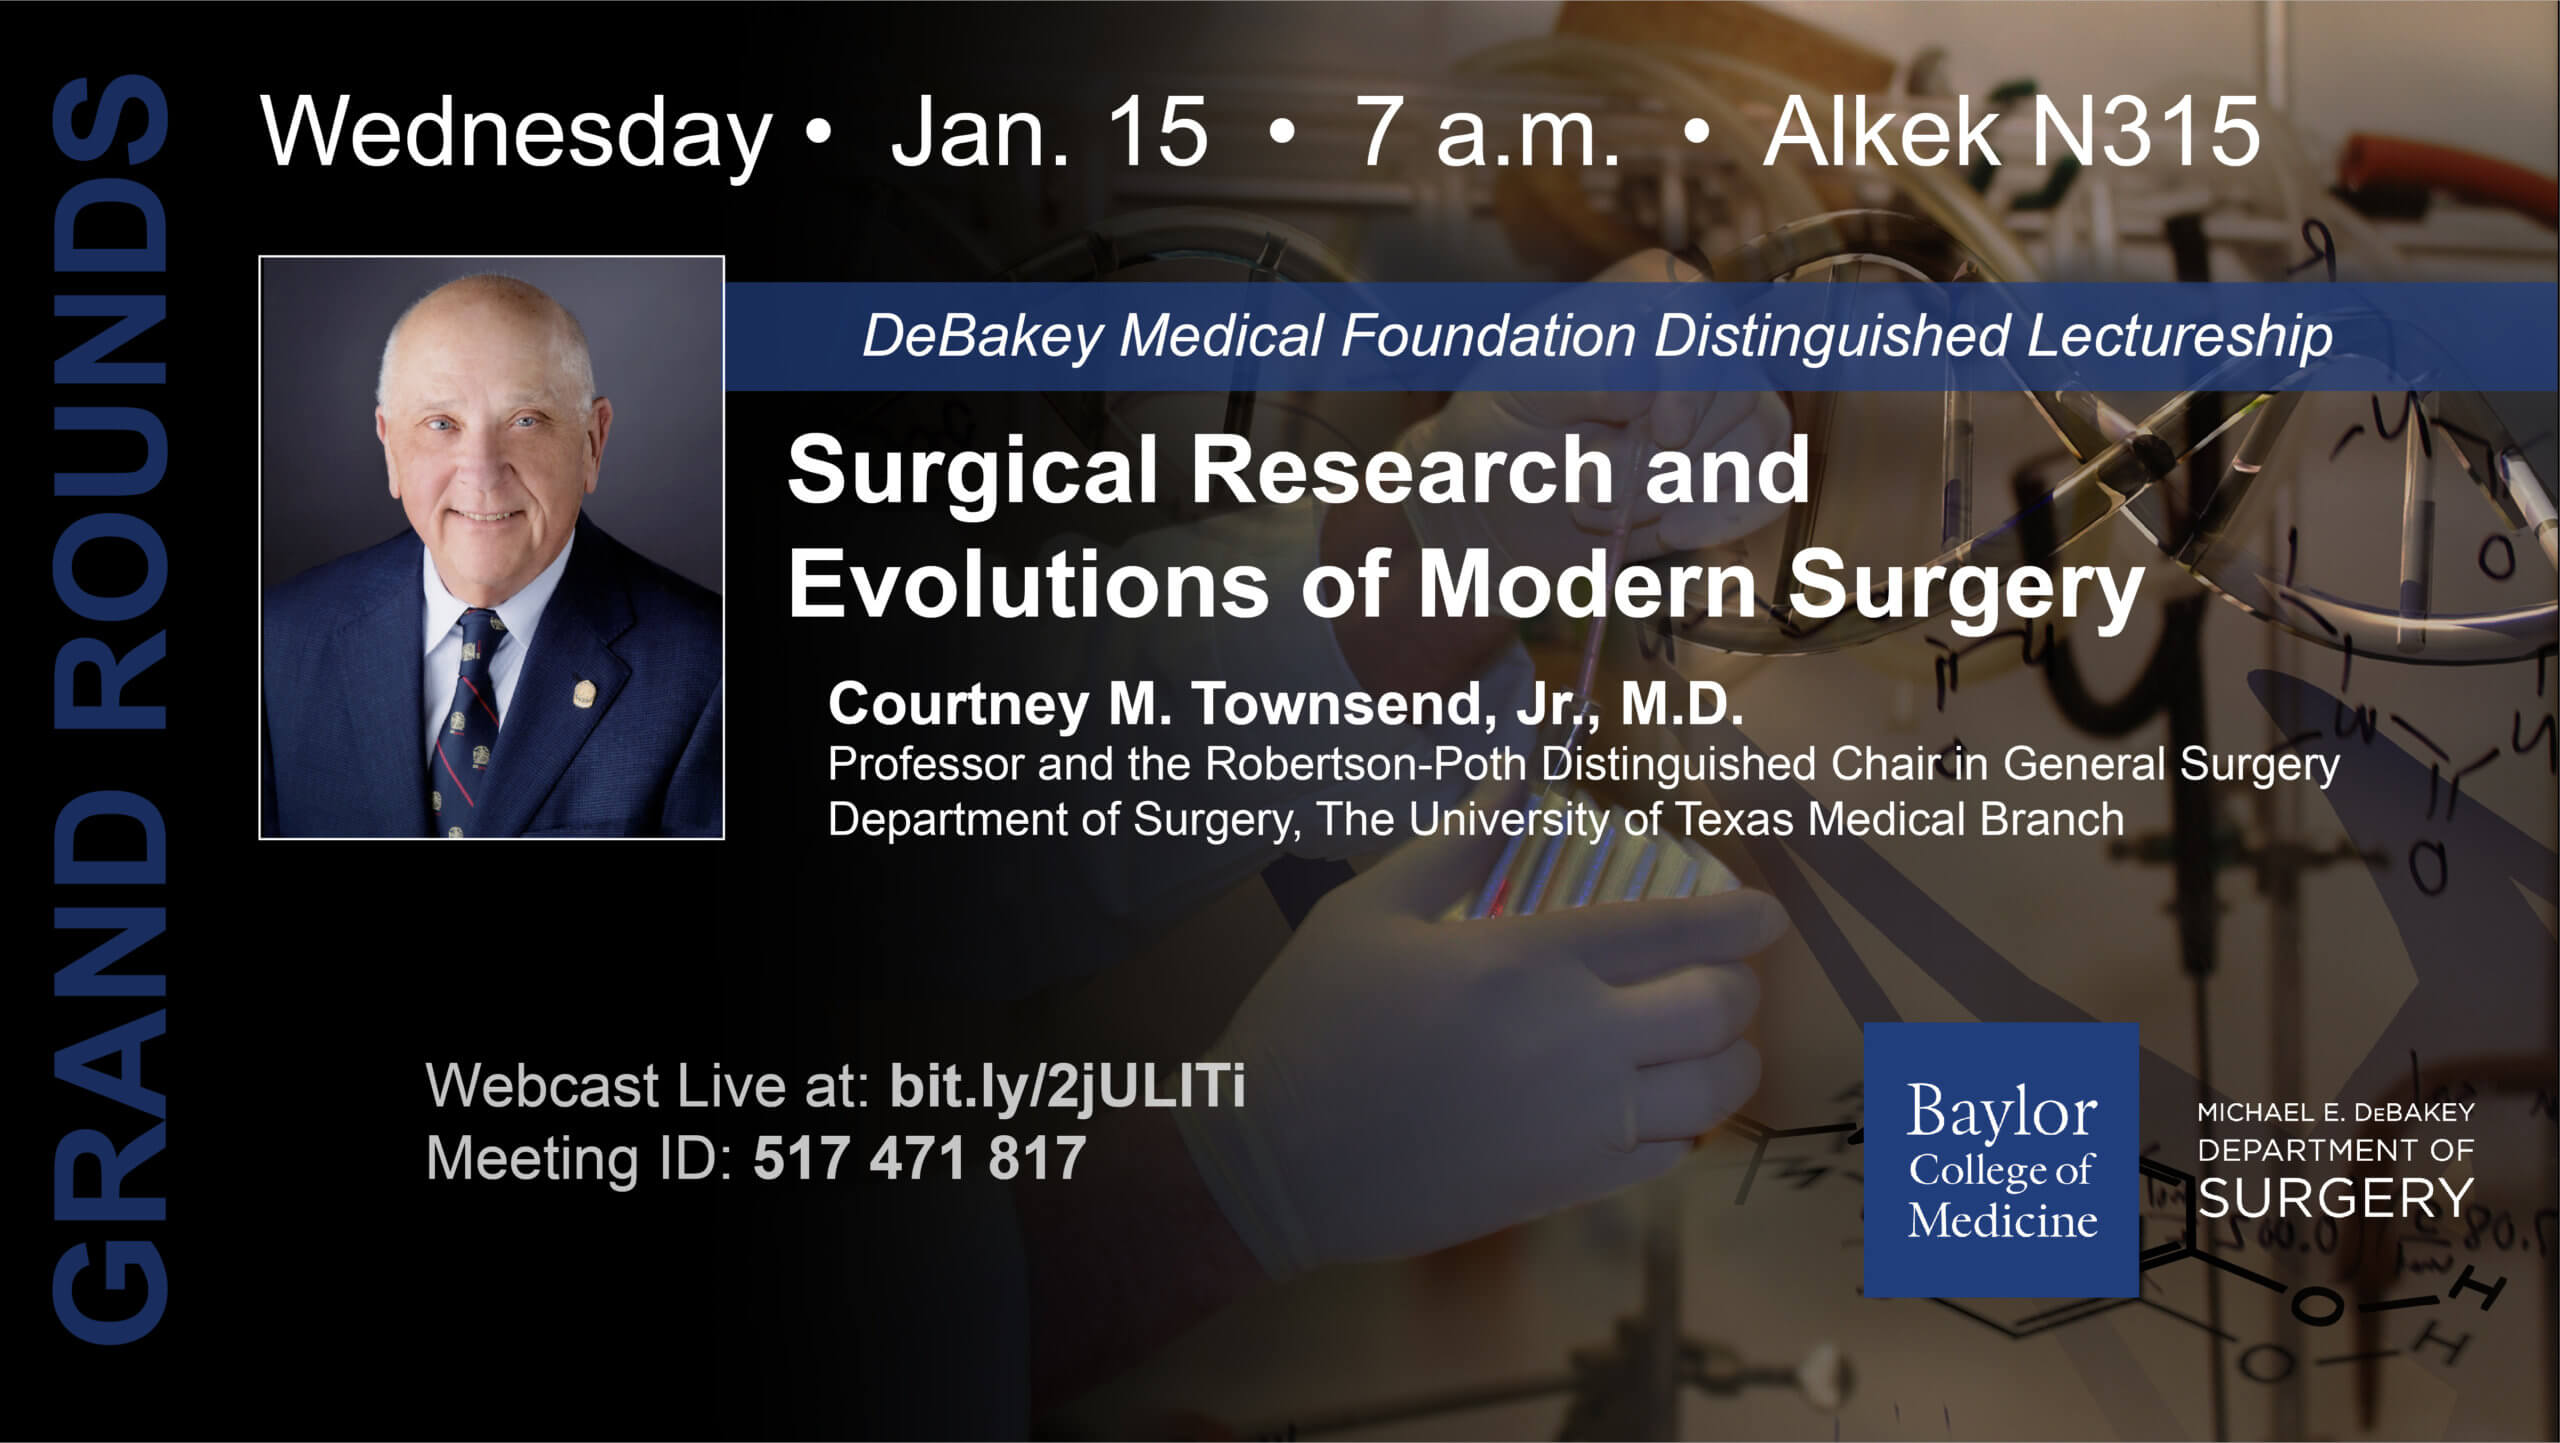 1-15-20-Grand-Rounds-LCD-ad-Townsend.jpg